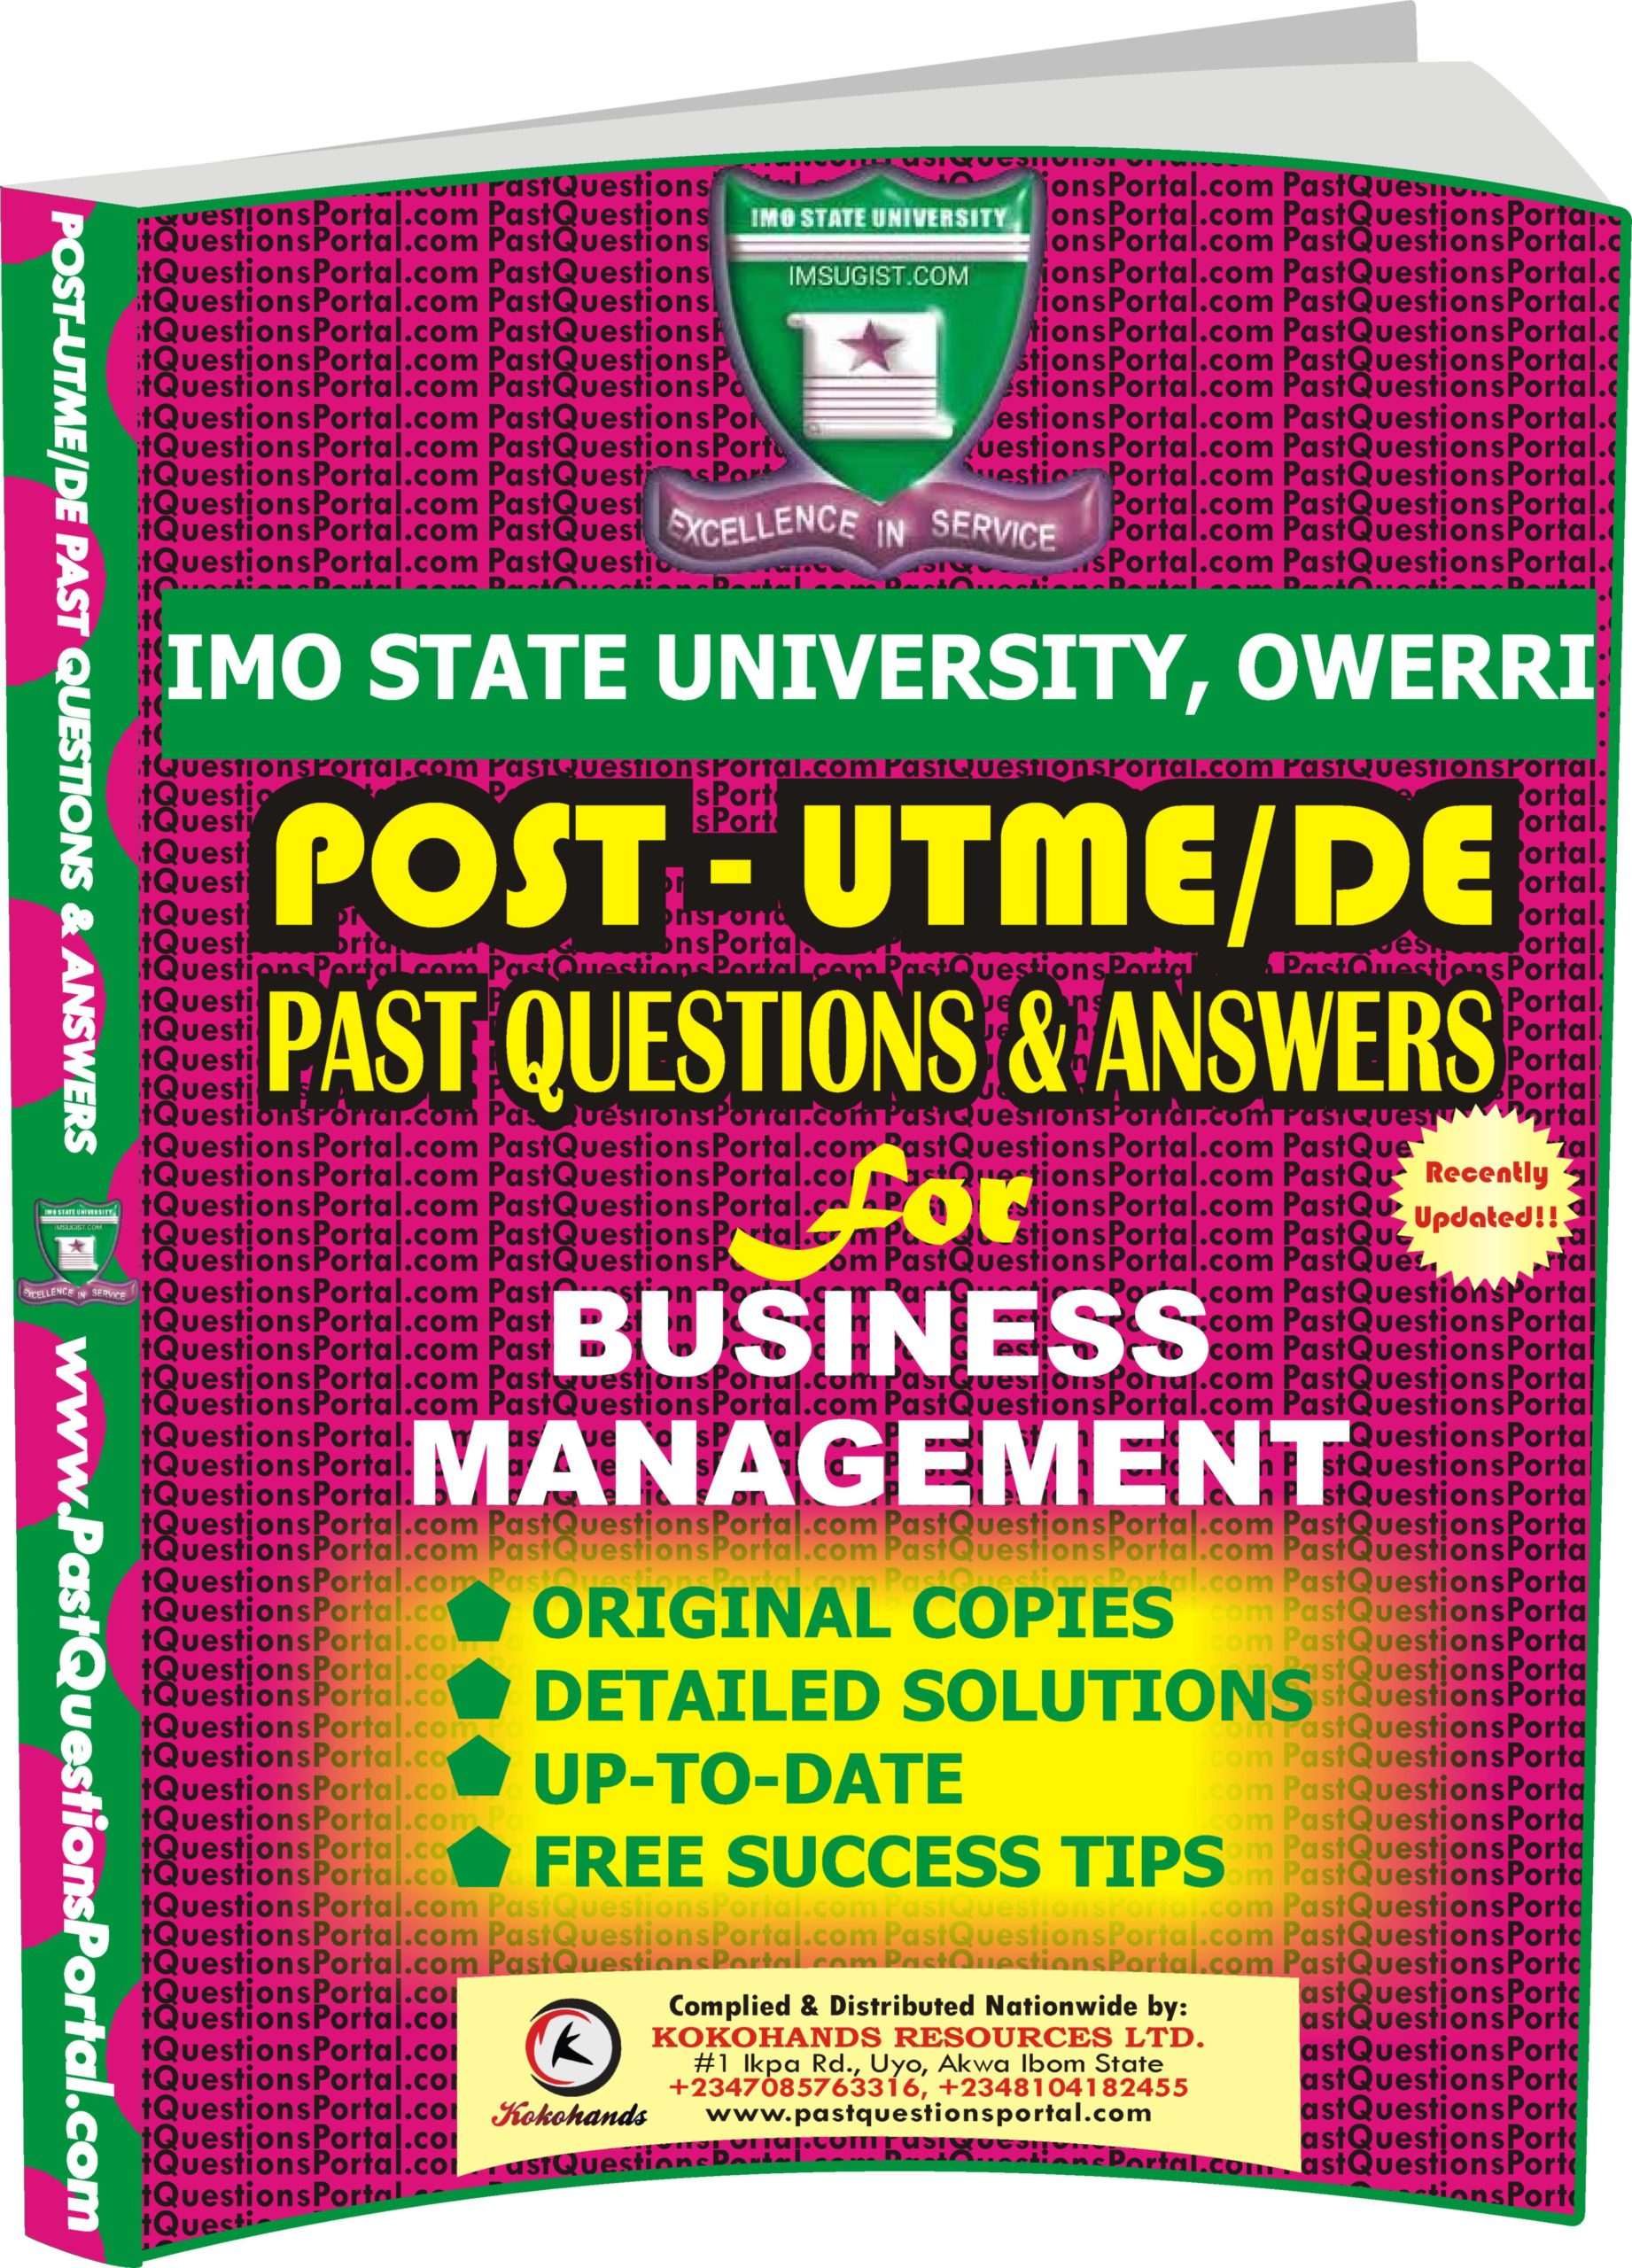 IMSU Post UTME Past Questions for BUSINESS MANAGEMENT